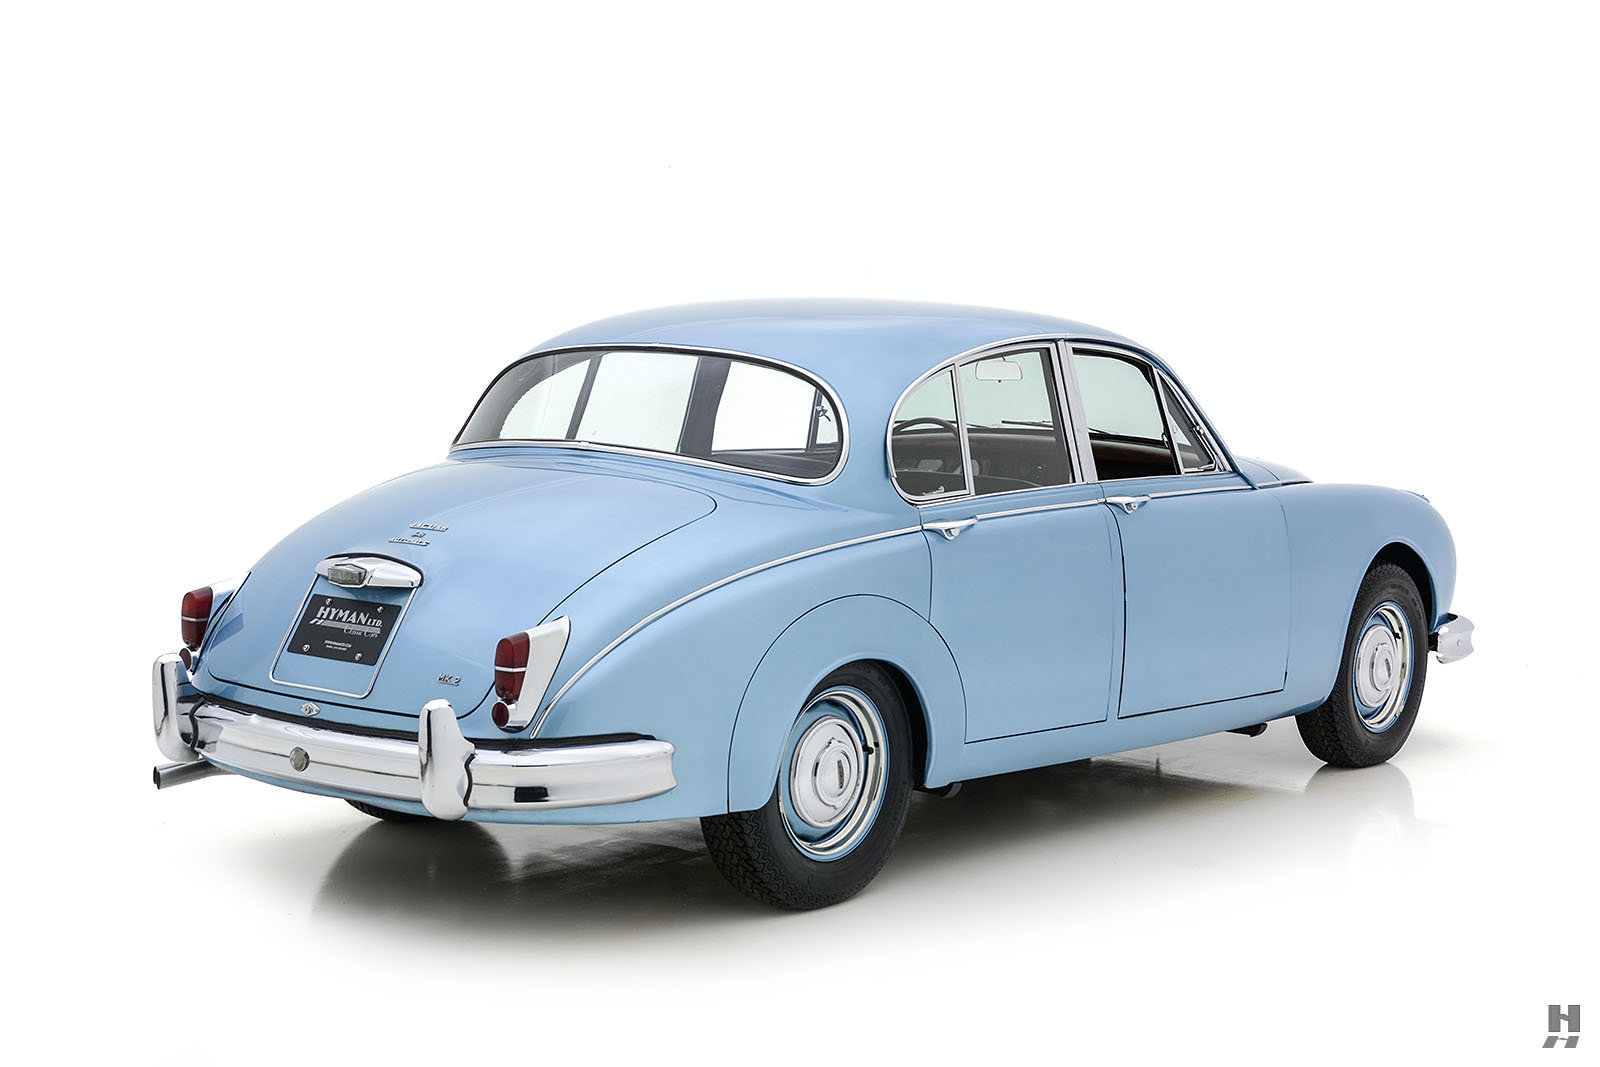 1963 JAGUAR MK II 3.8 SALOON For Sale (picture 5 of 6)